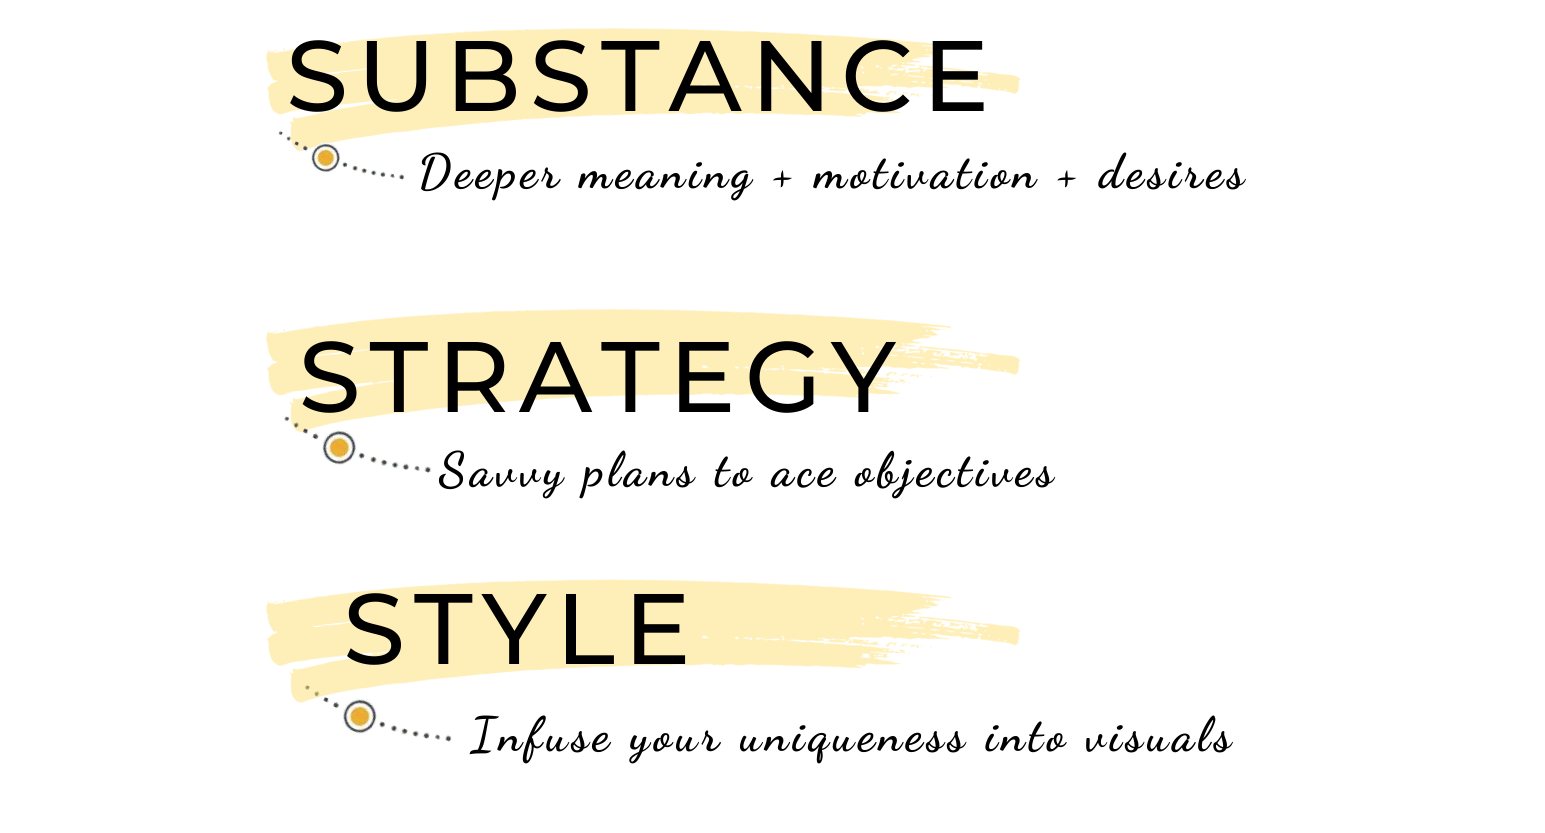 my VIP days cover Substance, Strategy & Style